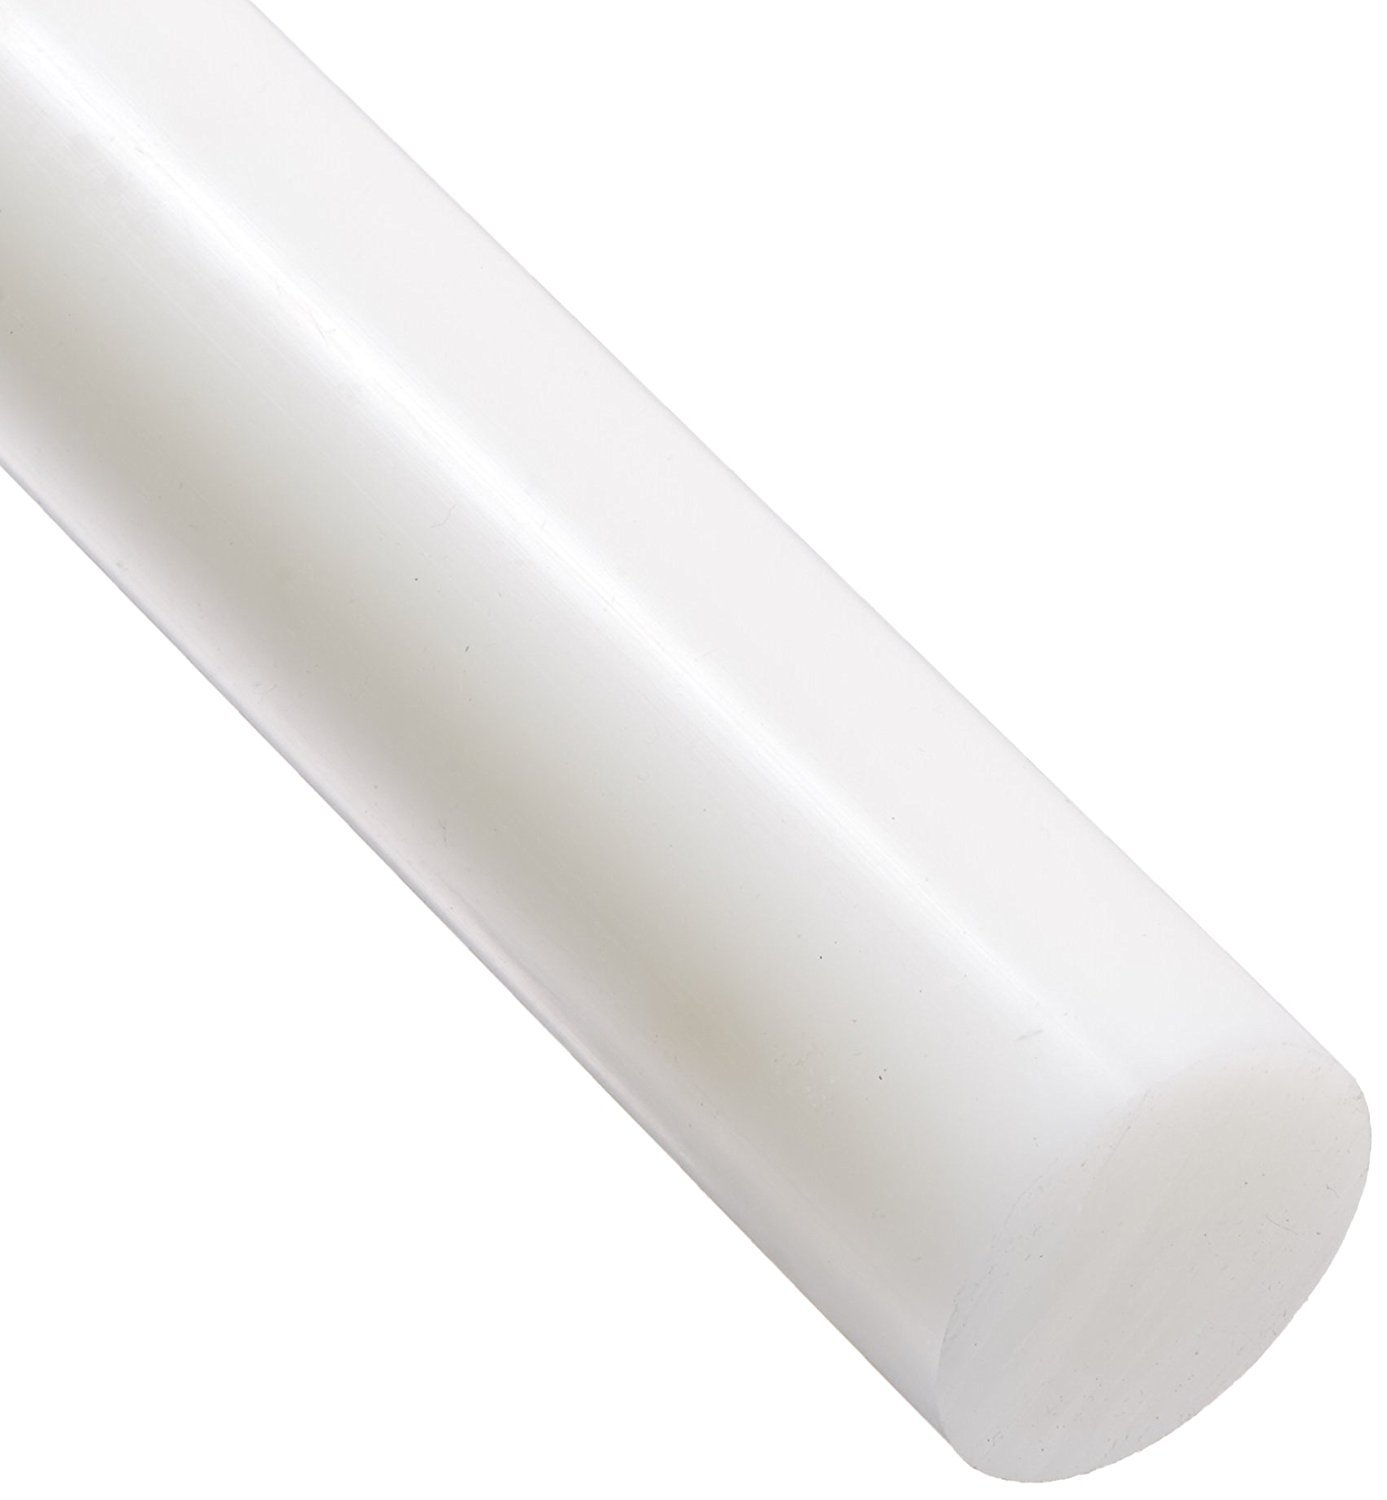 HDPE High Density Polyethylene Round Rod, Translucent White 50mm Diameter x 300mm Long Grade A PE 500 J&A Racing